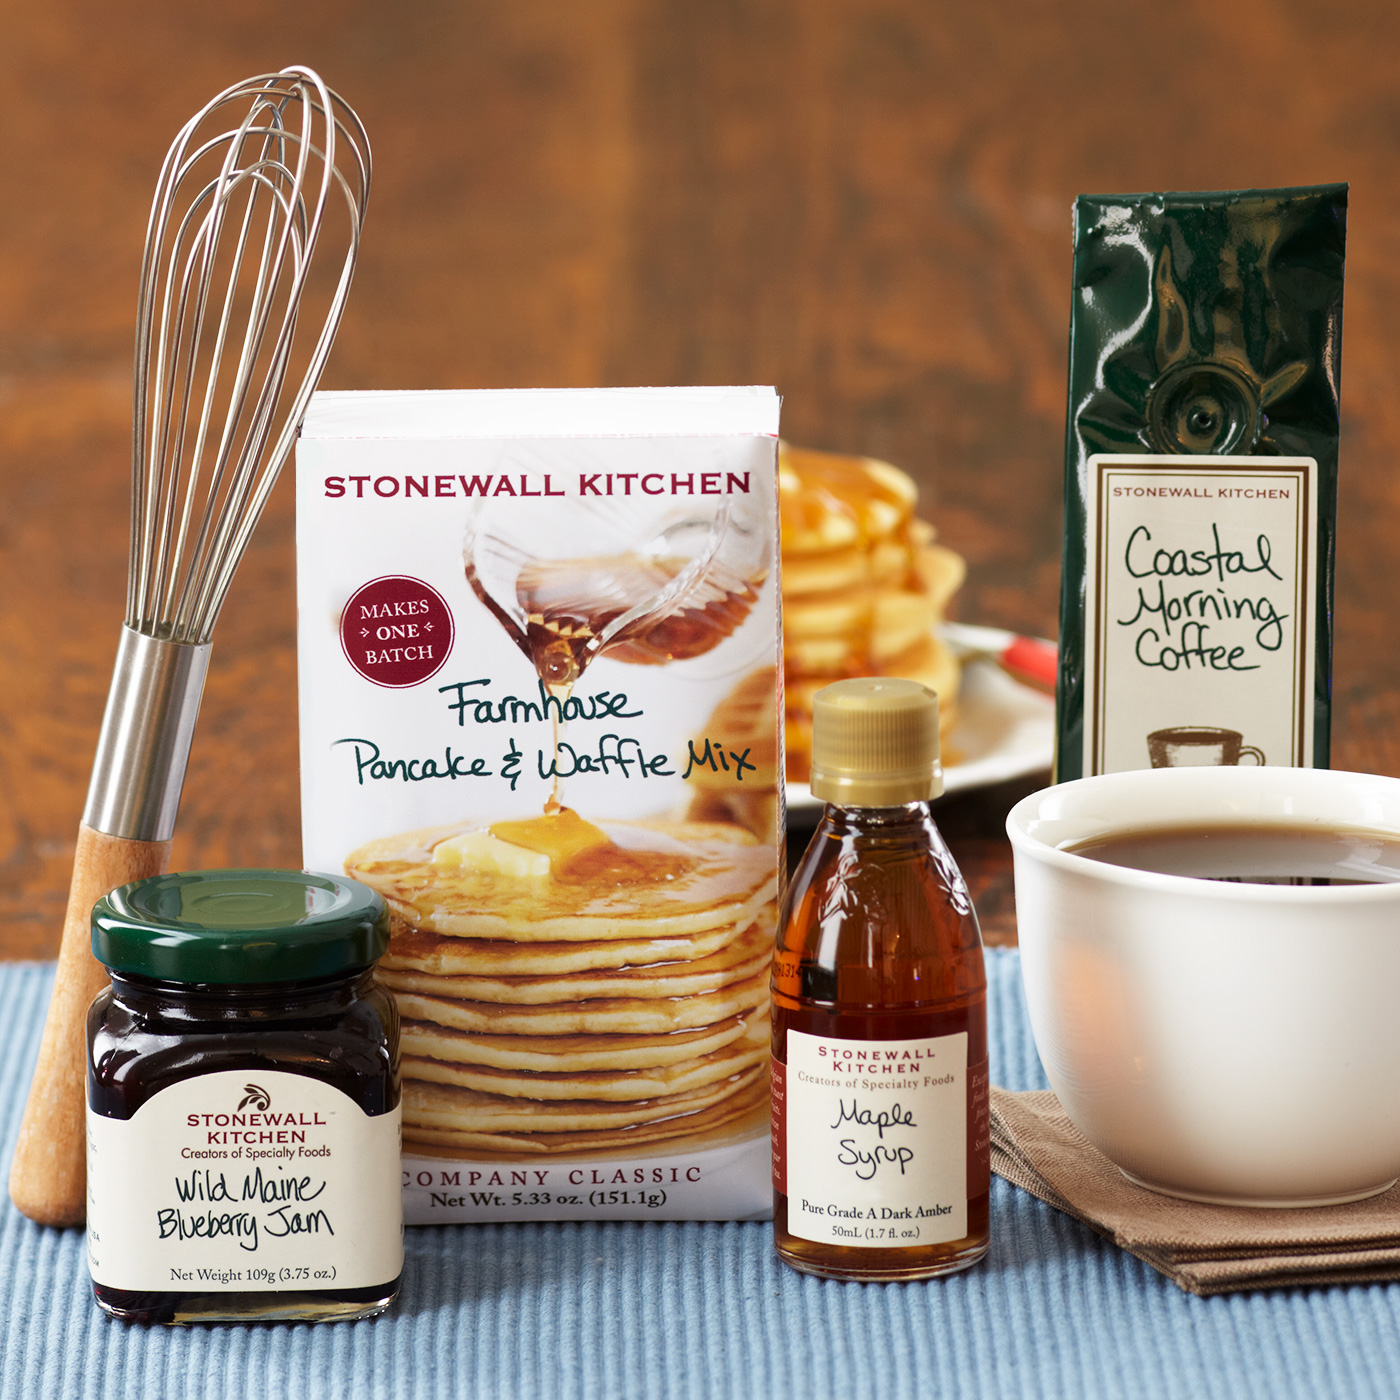 Stonewall Kitchen One Batch Breakfast Gift with jam, maple syrup, and a whisk